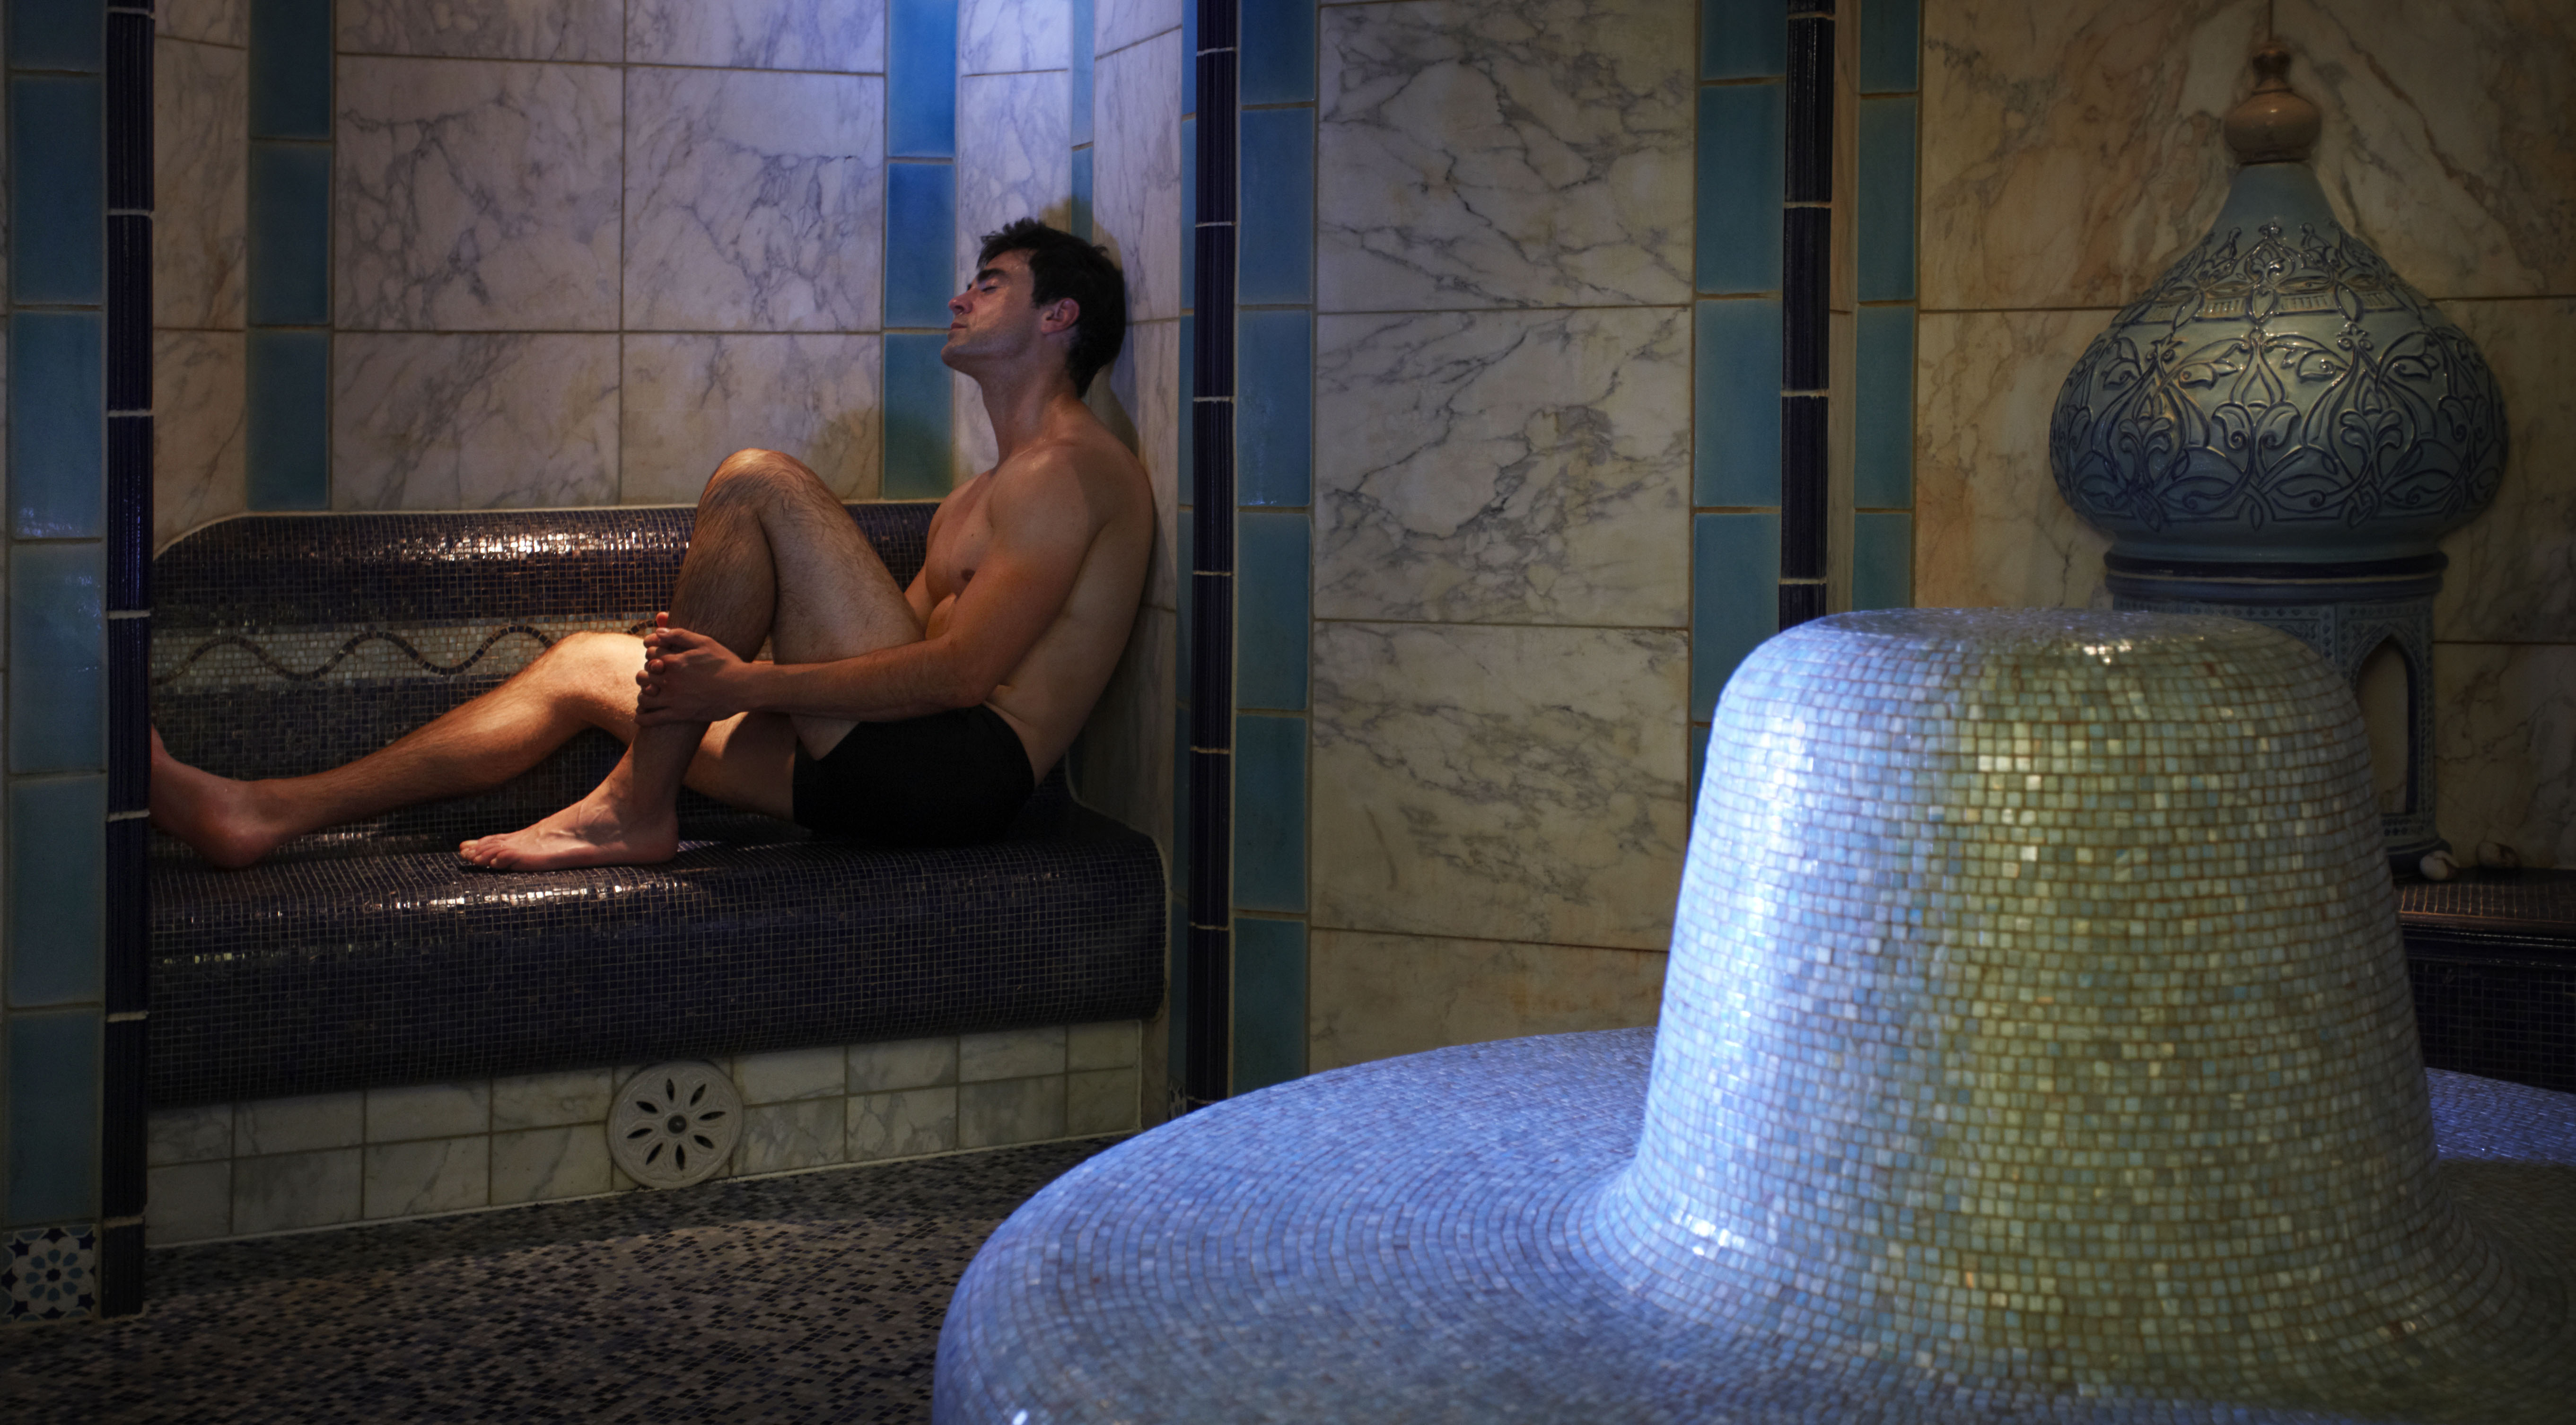 Image courtesy of Pennyhill Park Hotel and Spa  www.thespa.uk.com